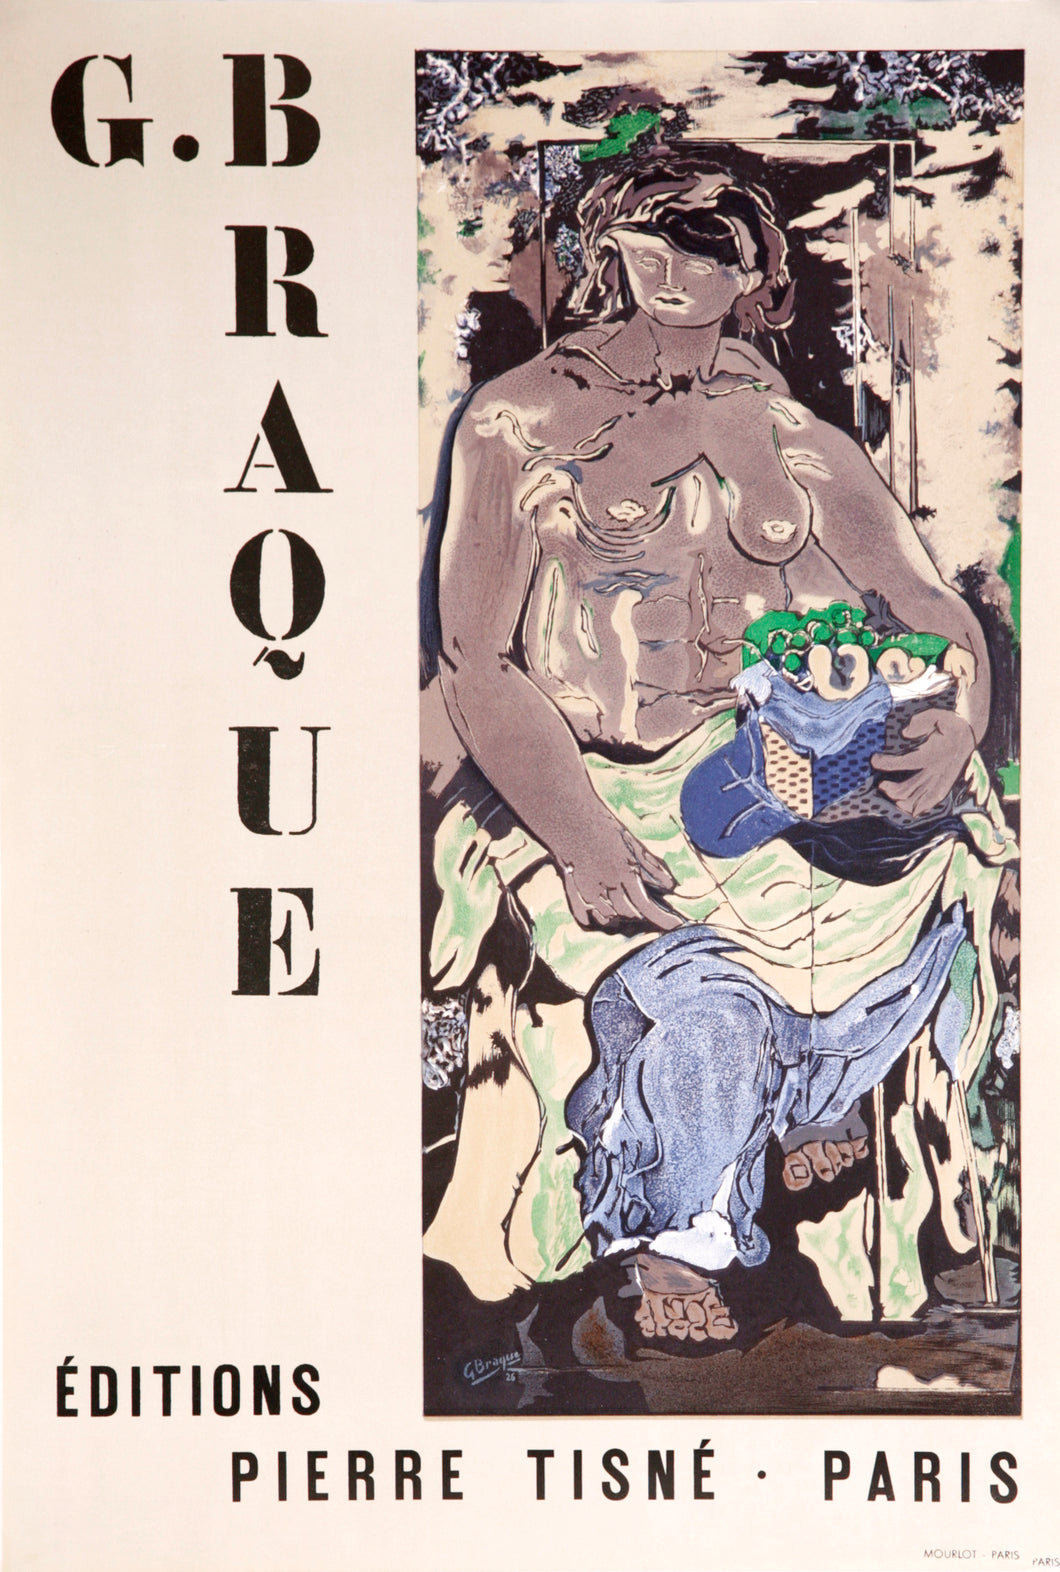 Editions Pierre Tisne-Paris by Georges Braque 1953